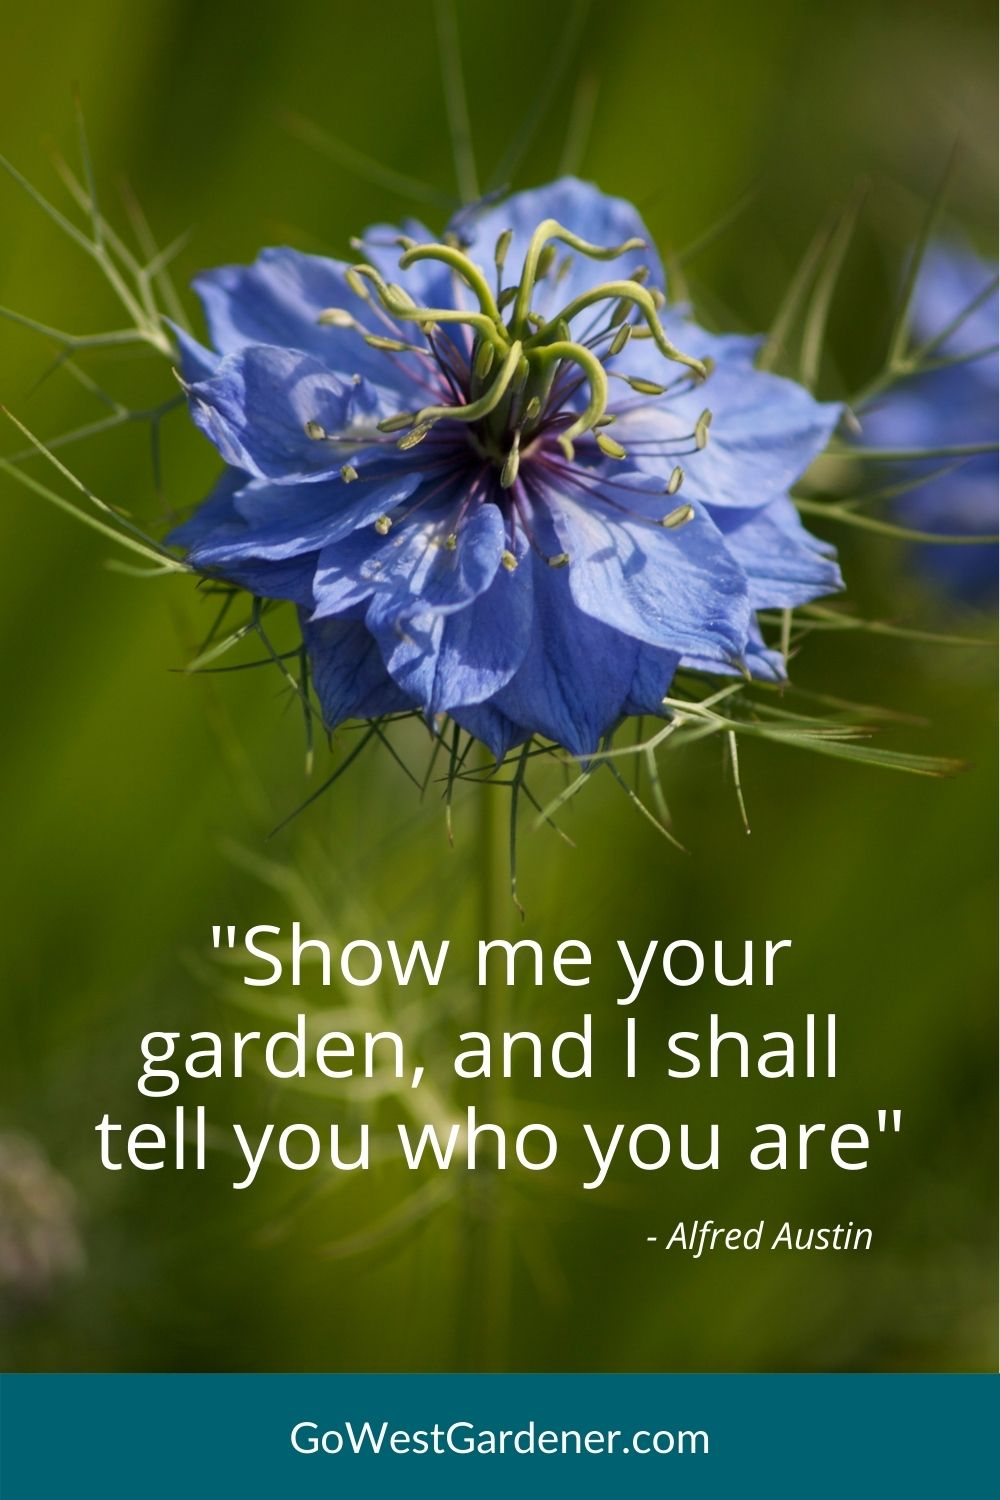 """Inspirational gardening quotes: """"Show me your garden, and I shall tell you who you are."""" -- Alfred Austin"""